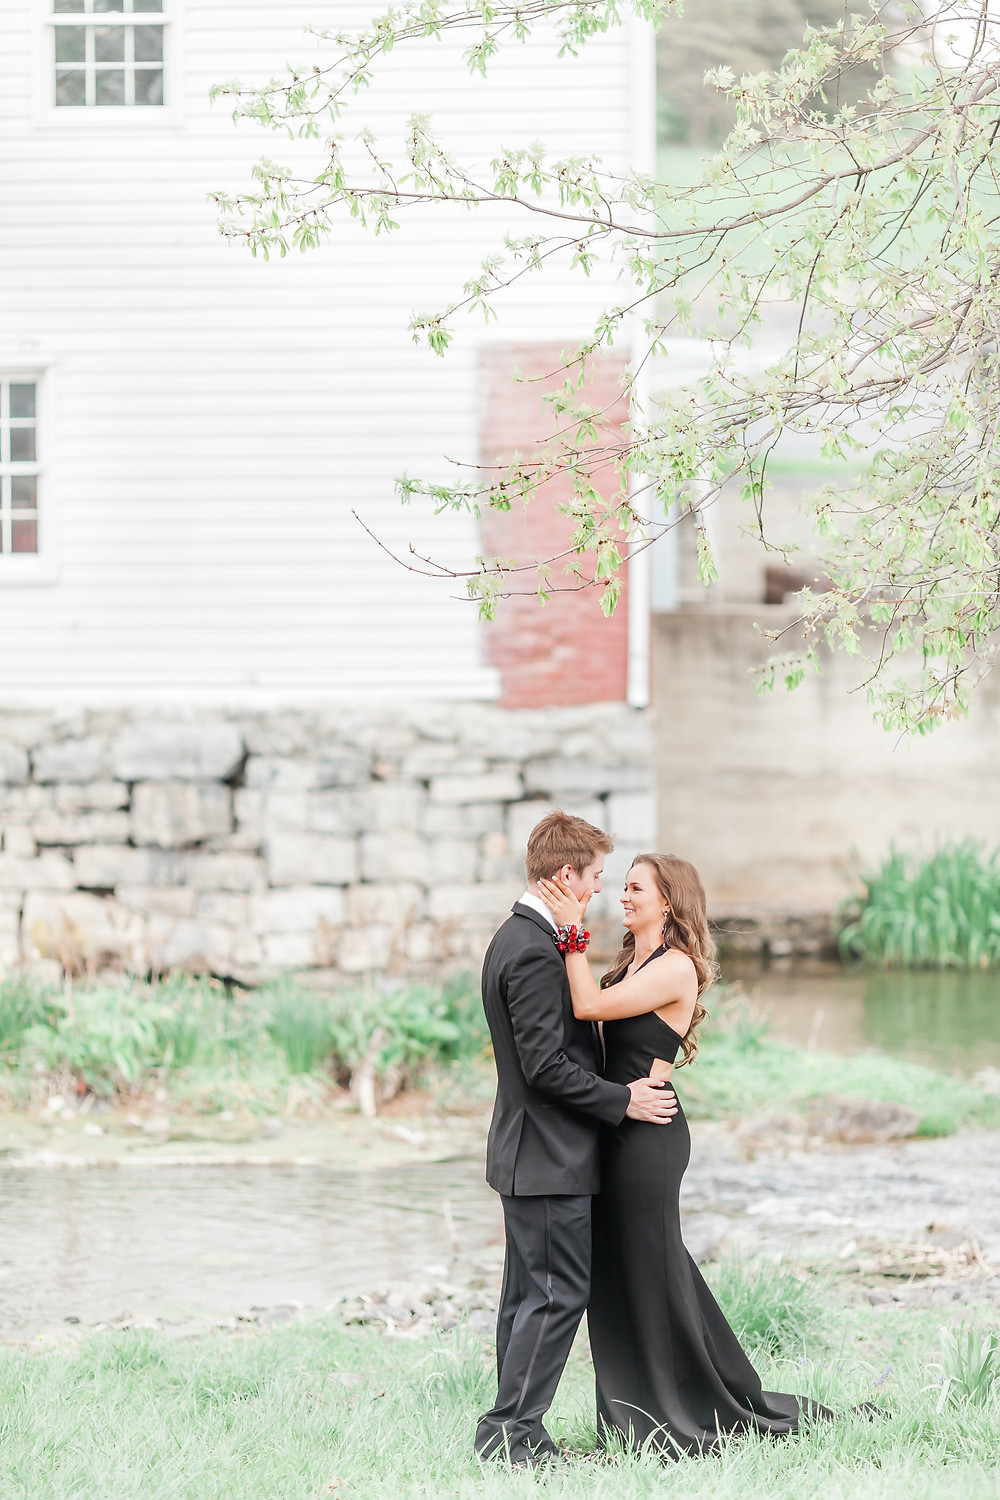 Silver Lake prom photo session 8